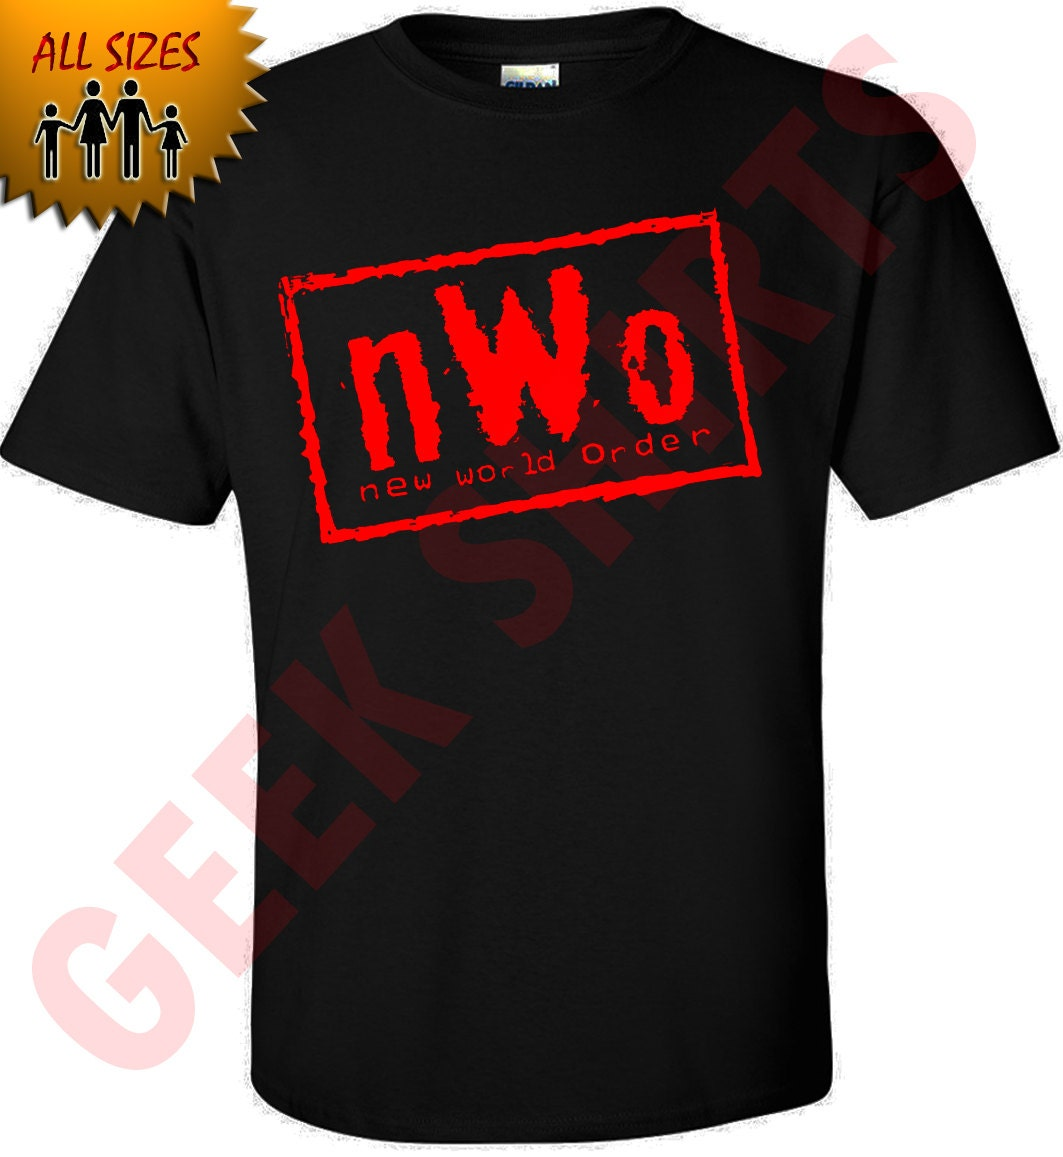 New world order t shirt nwo logo wcw professional wrestling for Where to order shirts with logos